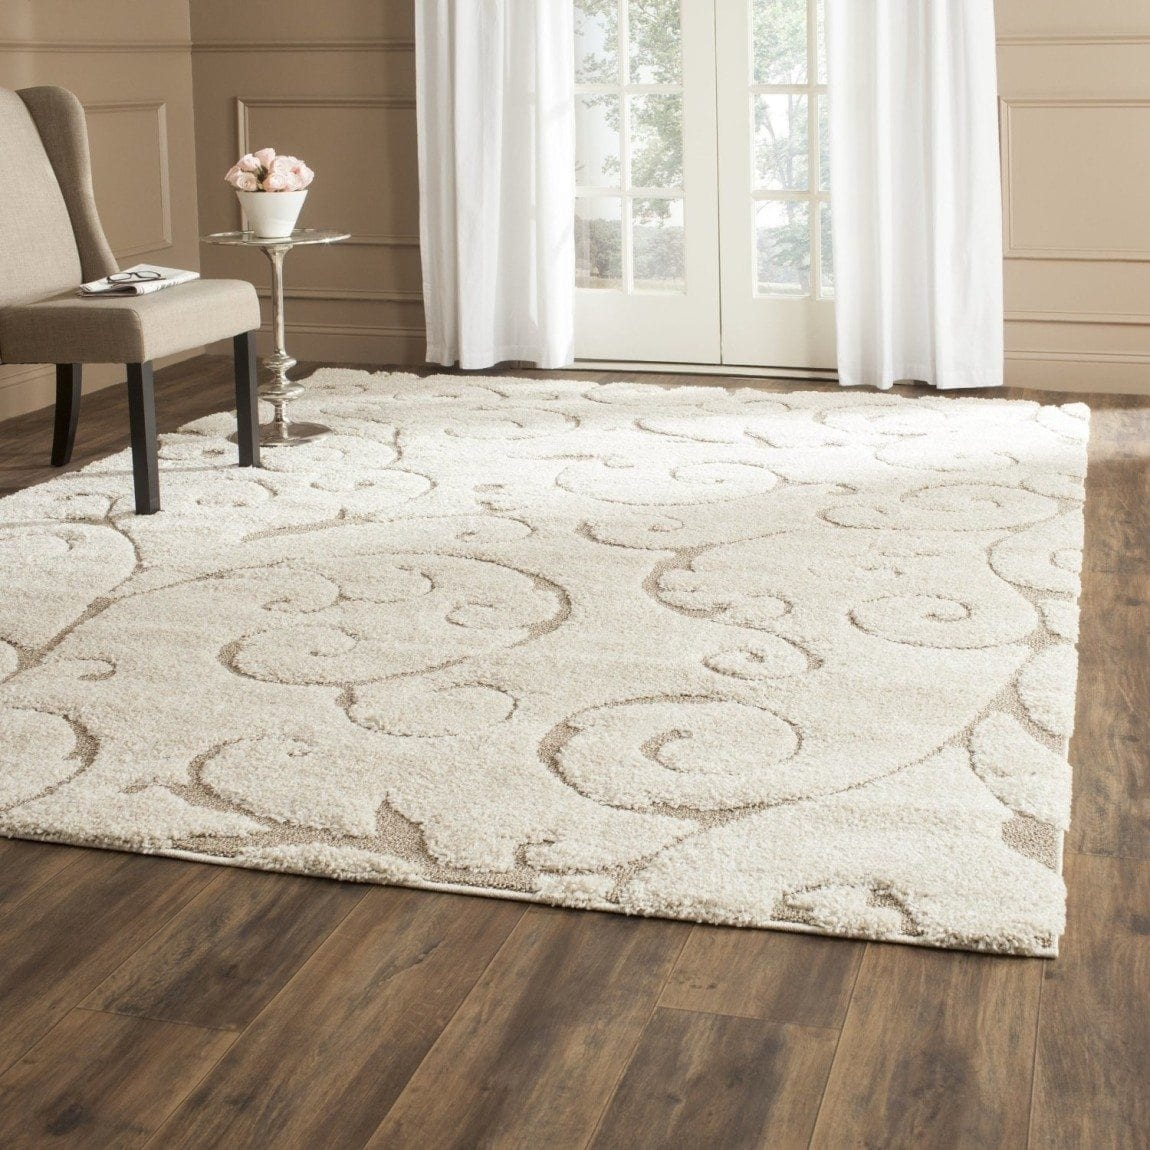 Shag Area Rugs large beautiful area rugs on a budget - under $150 | arts and classy